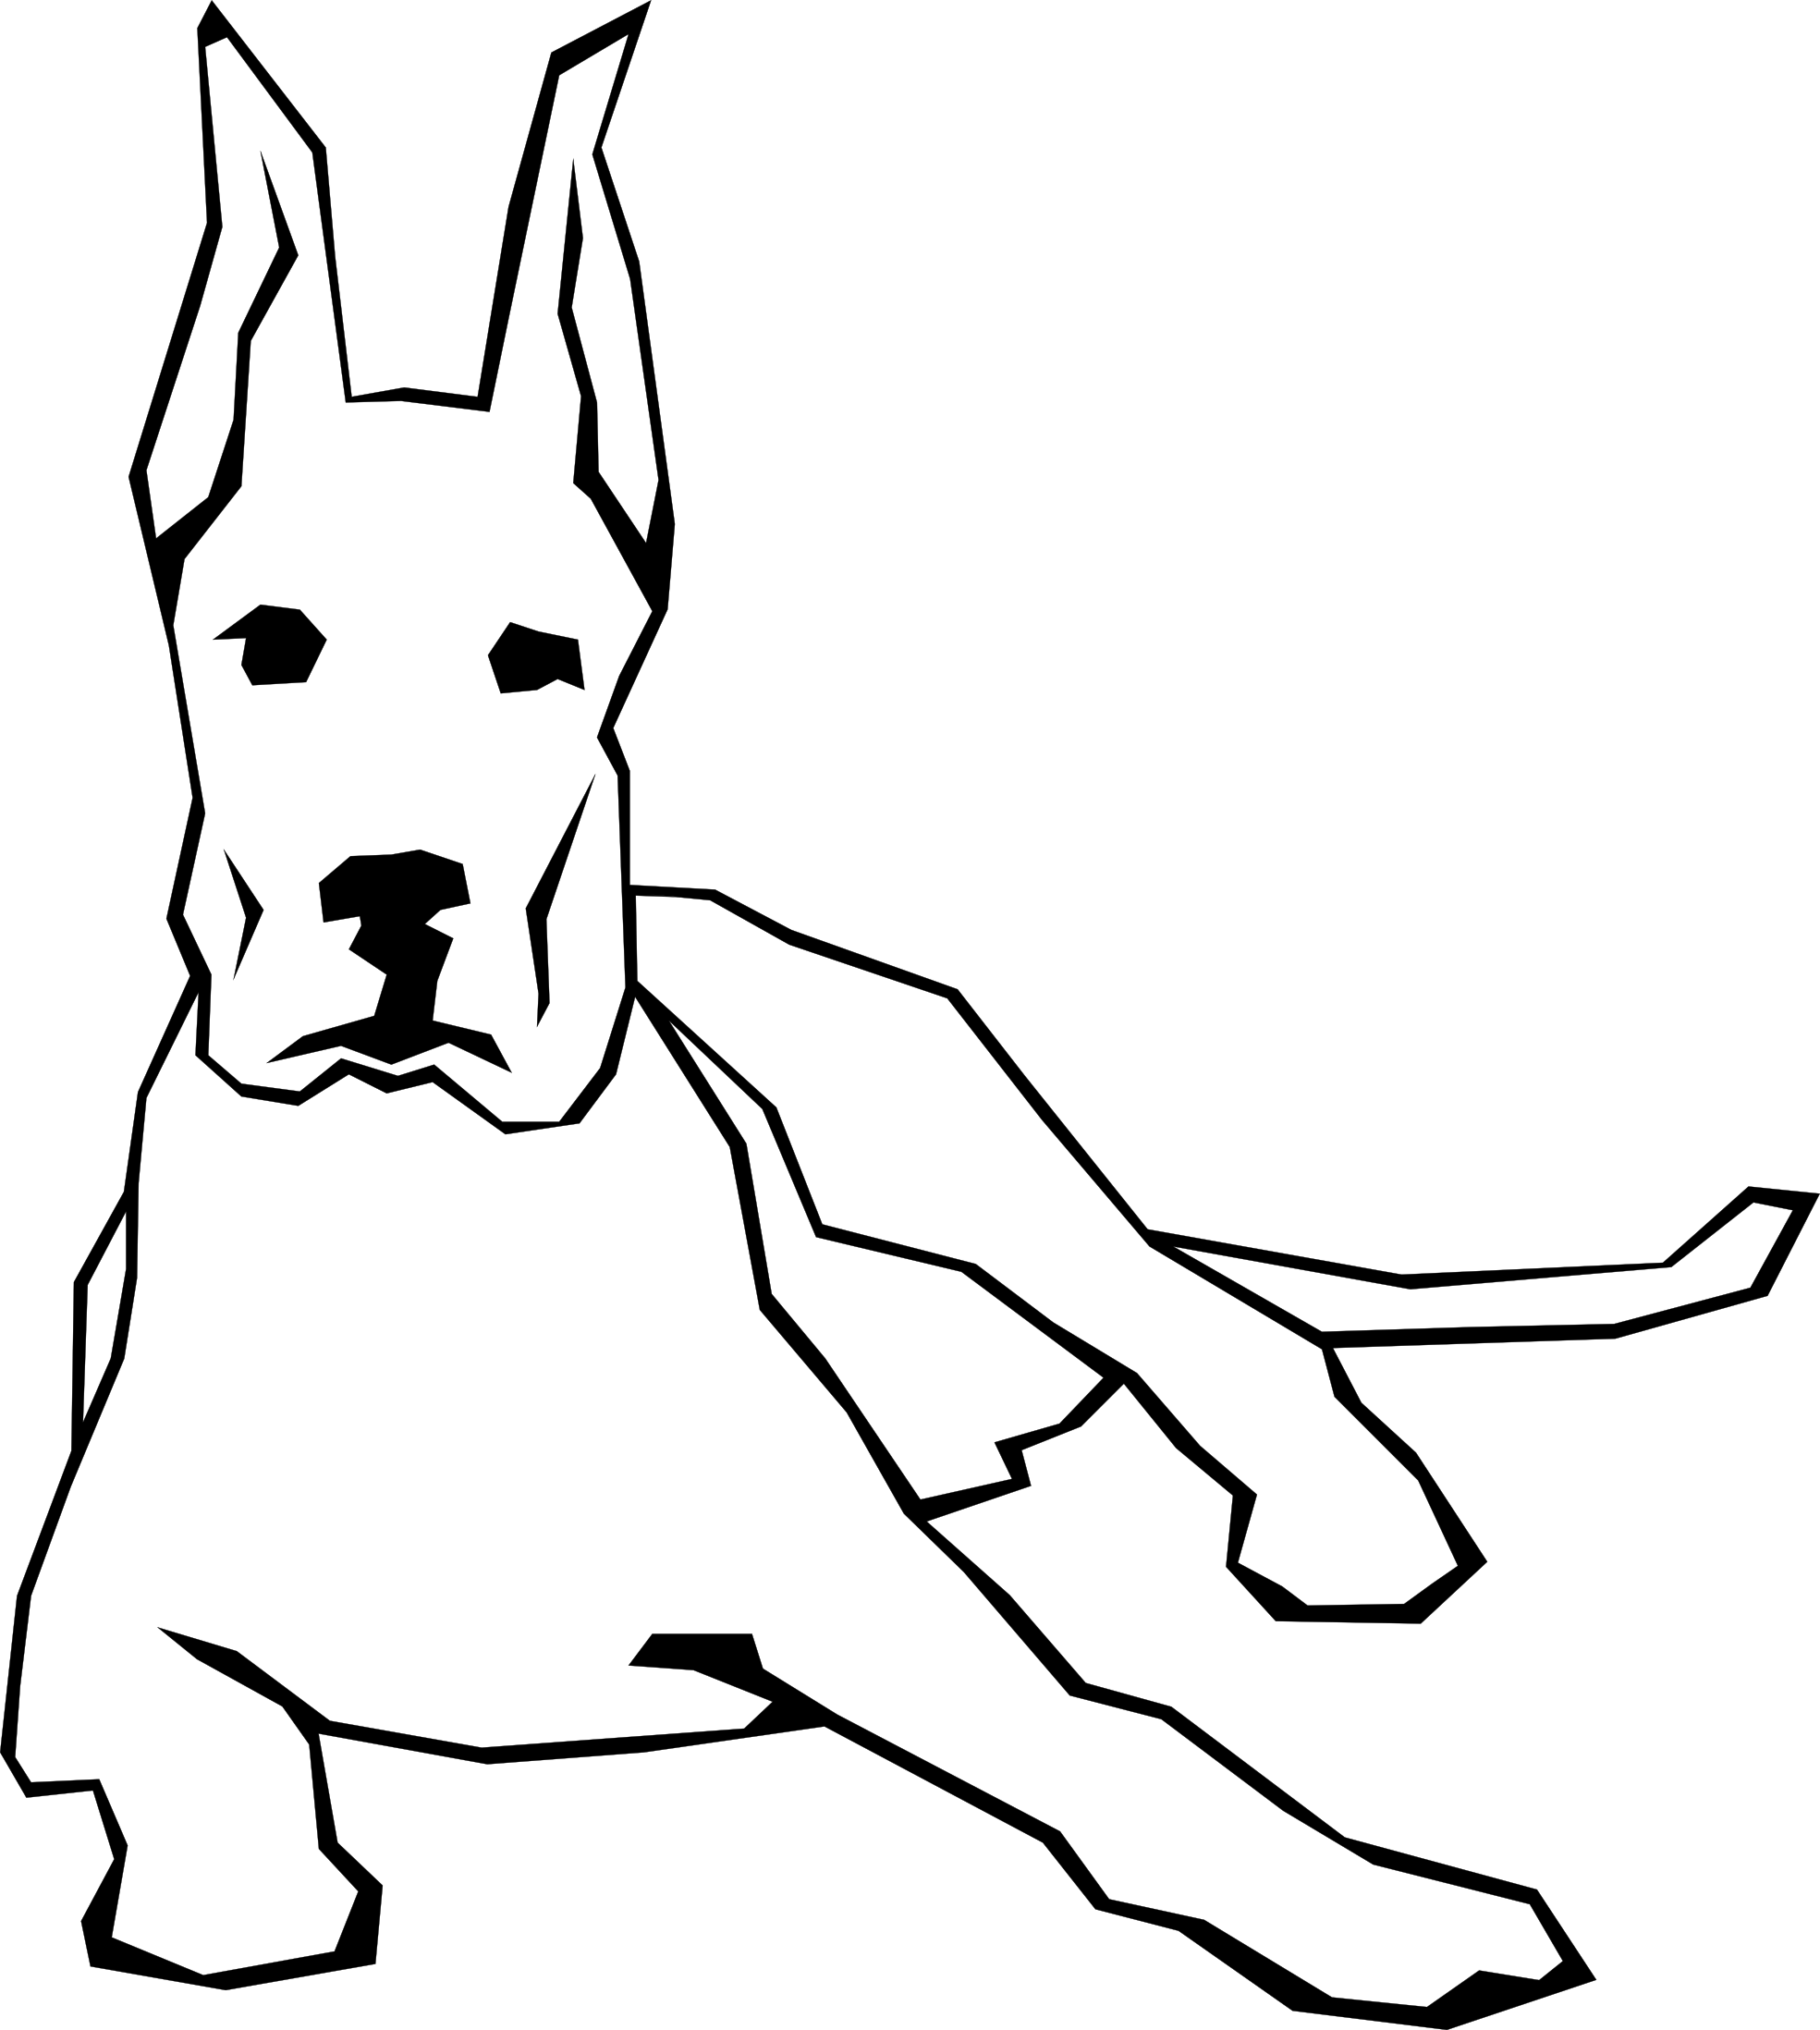 Dog barking clipart black and white clip art transparent download Dog Simple Drawing 9 Black White Line Art Scalable Vector Graphics ... clip art transparent download